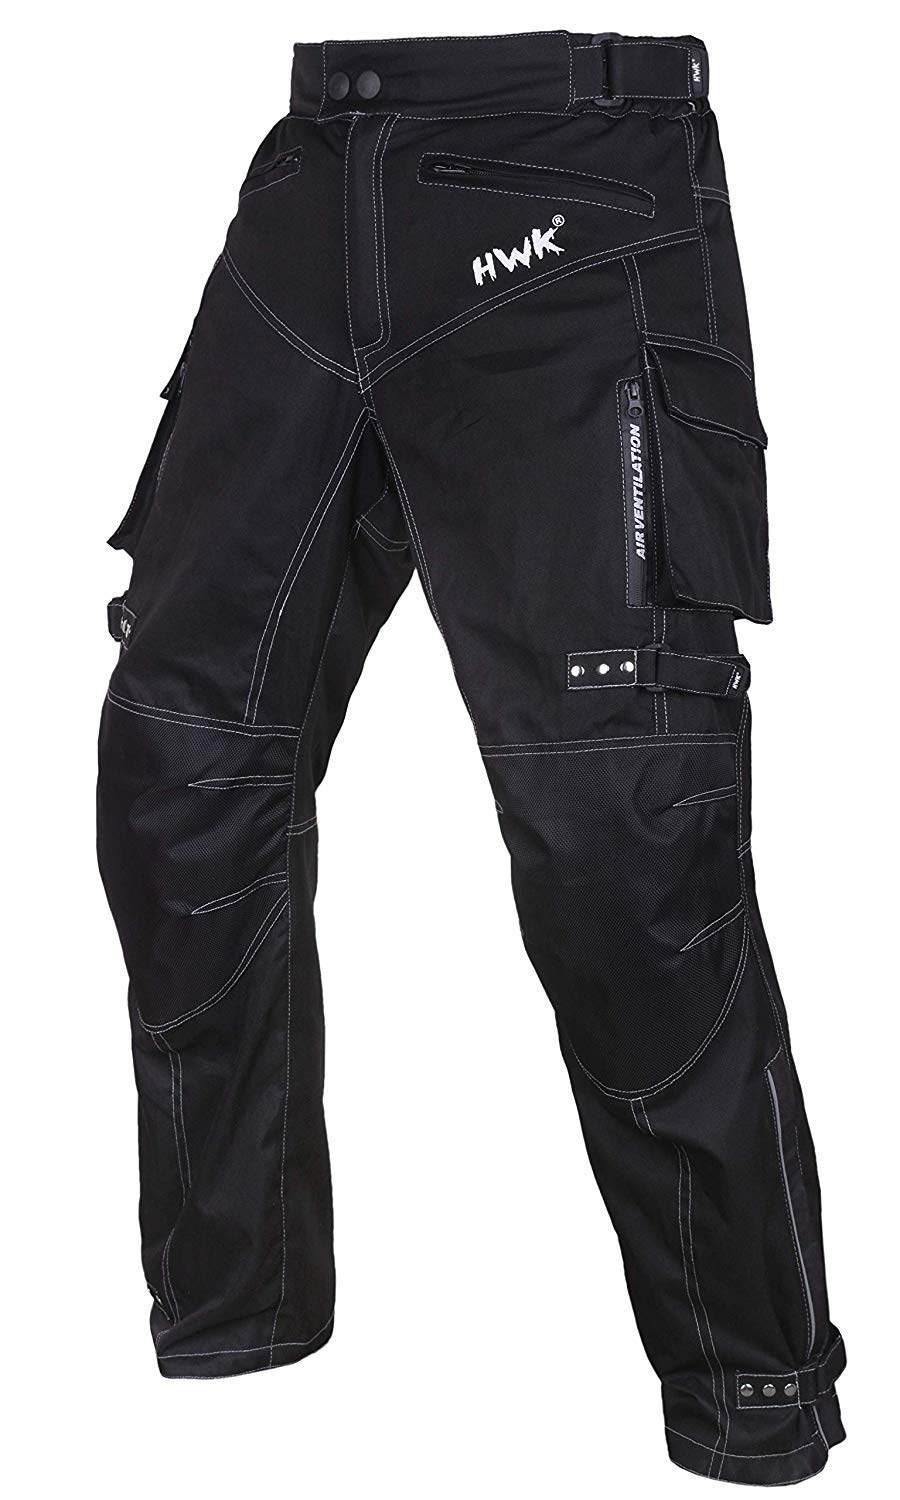 Motorcycle Pants Motocross Moto Motorbike Riding Overpants Waterproof All-Weather Pants (Waist40''-42'' Inseam30'')